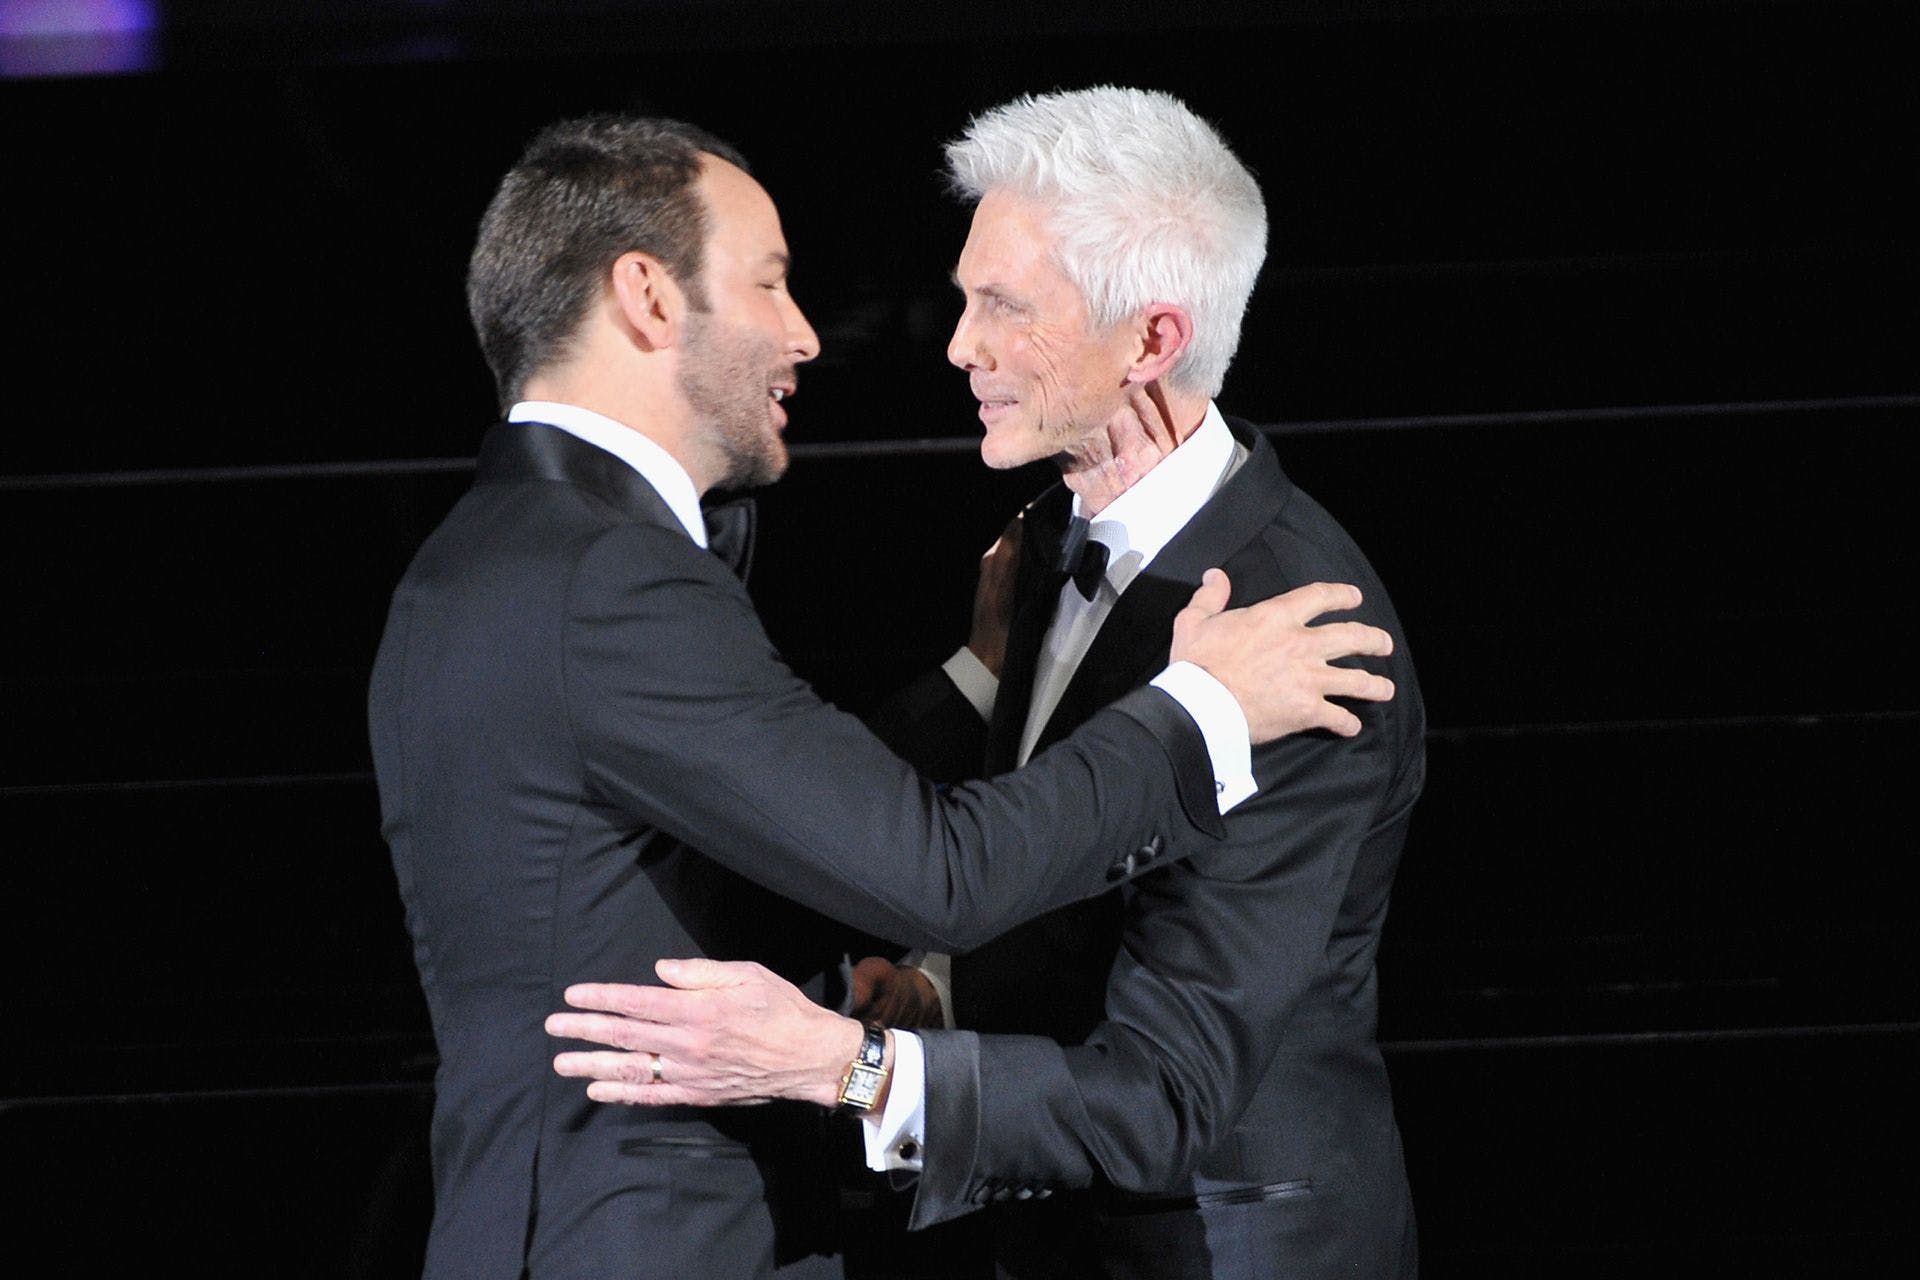 Vogue Tom Ford Husband Richard Buckley Love At First Sight.